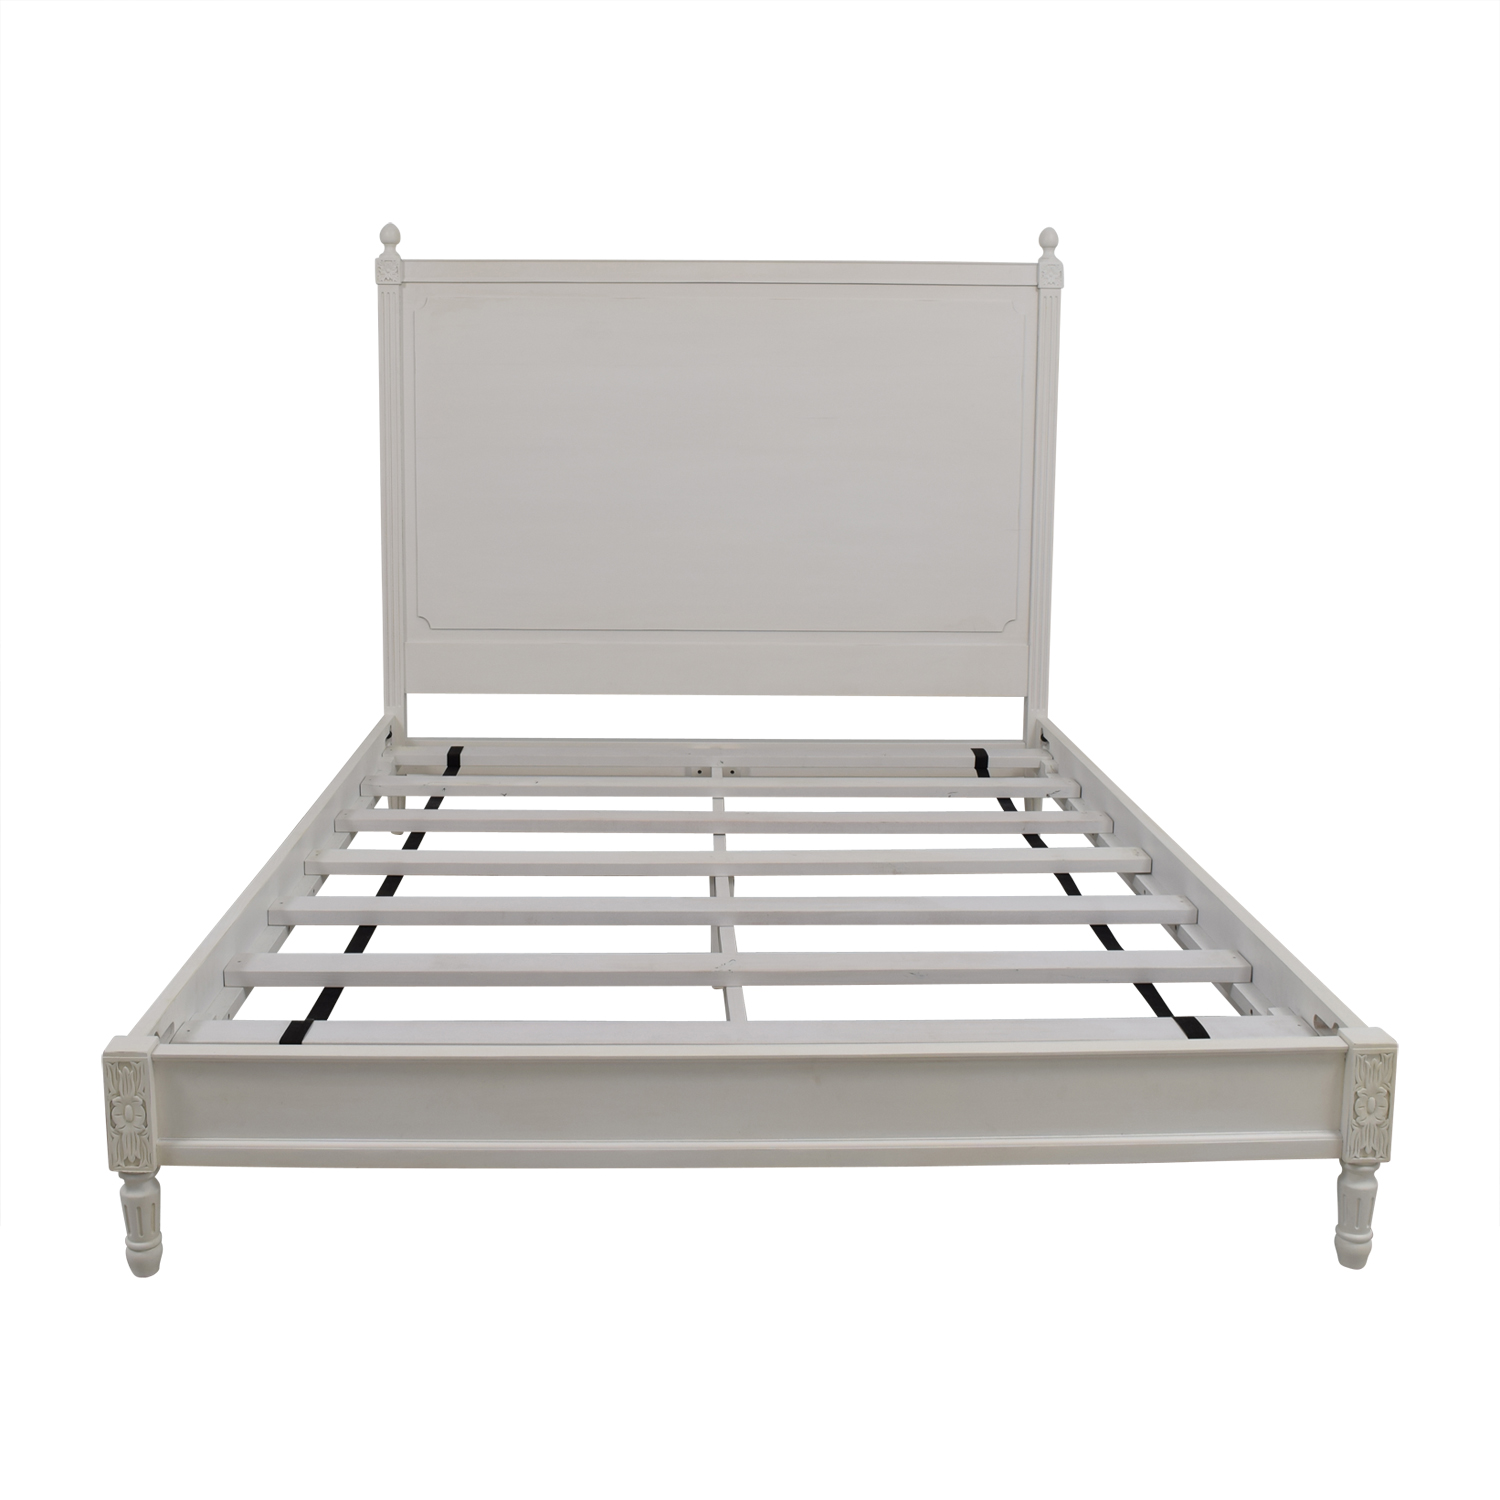 Shop Restoration Hardware Louis XVI Collection Queen Bed Frame Frames